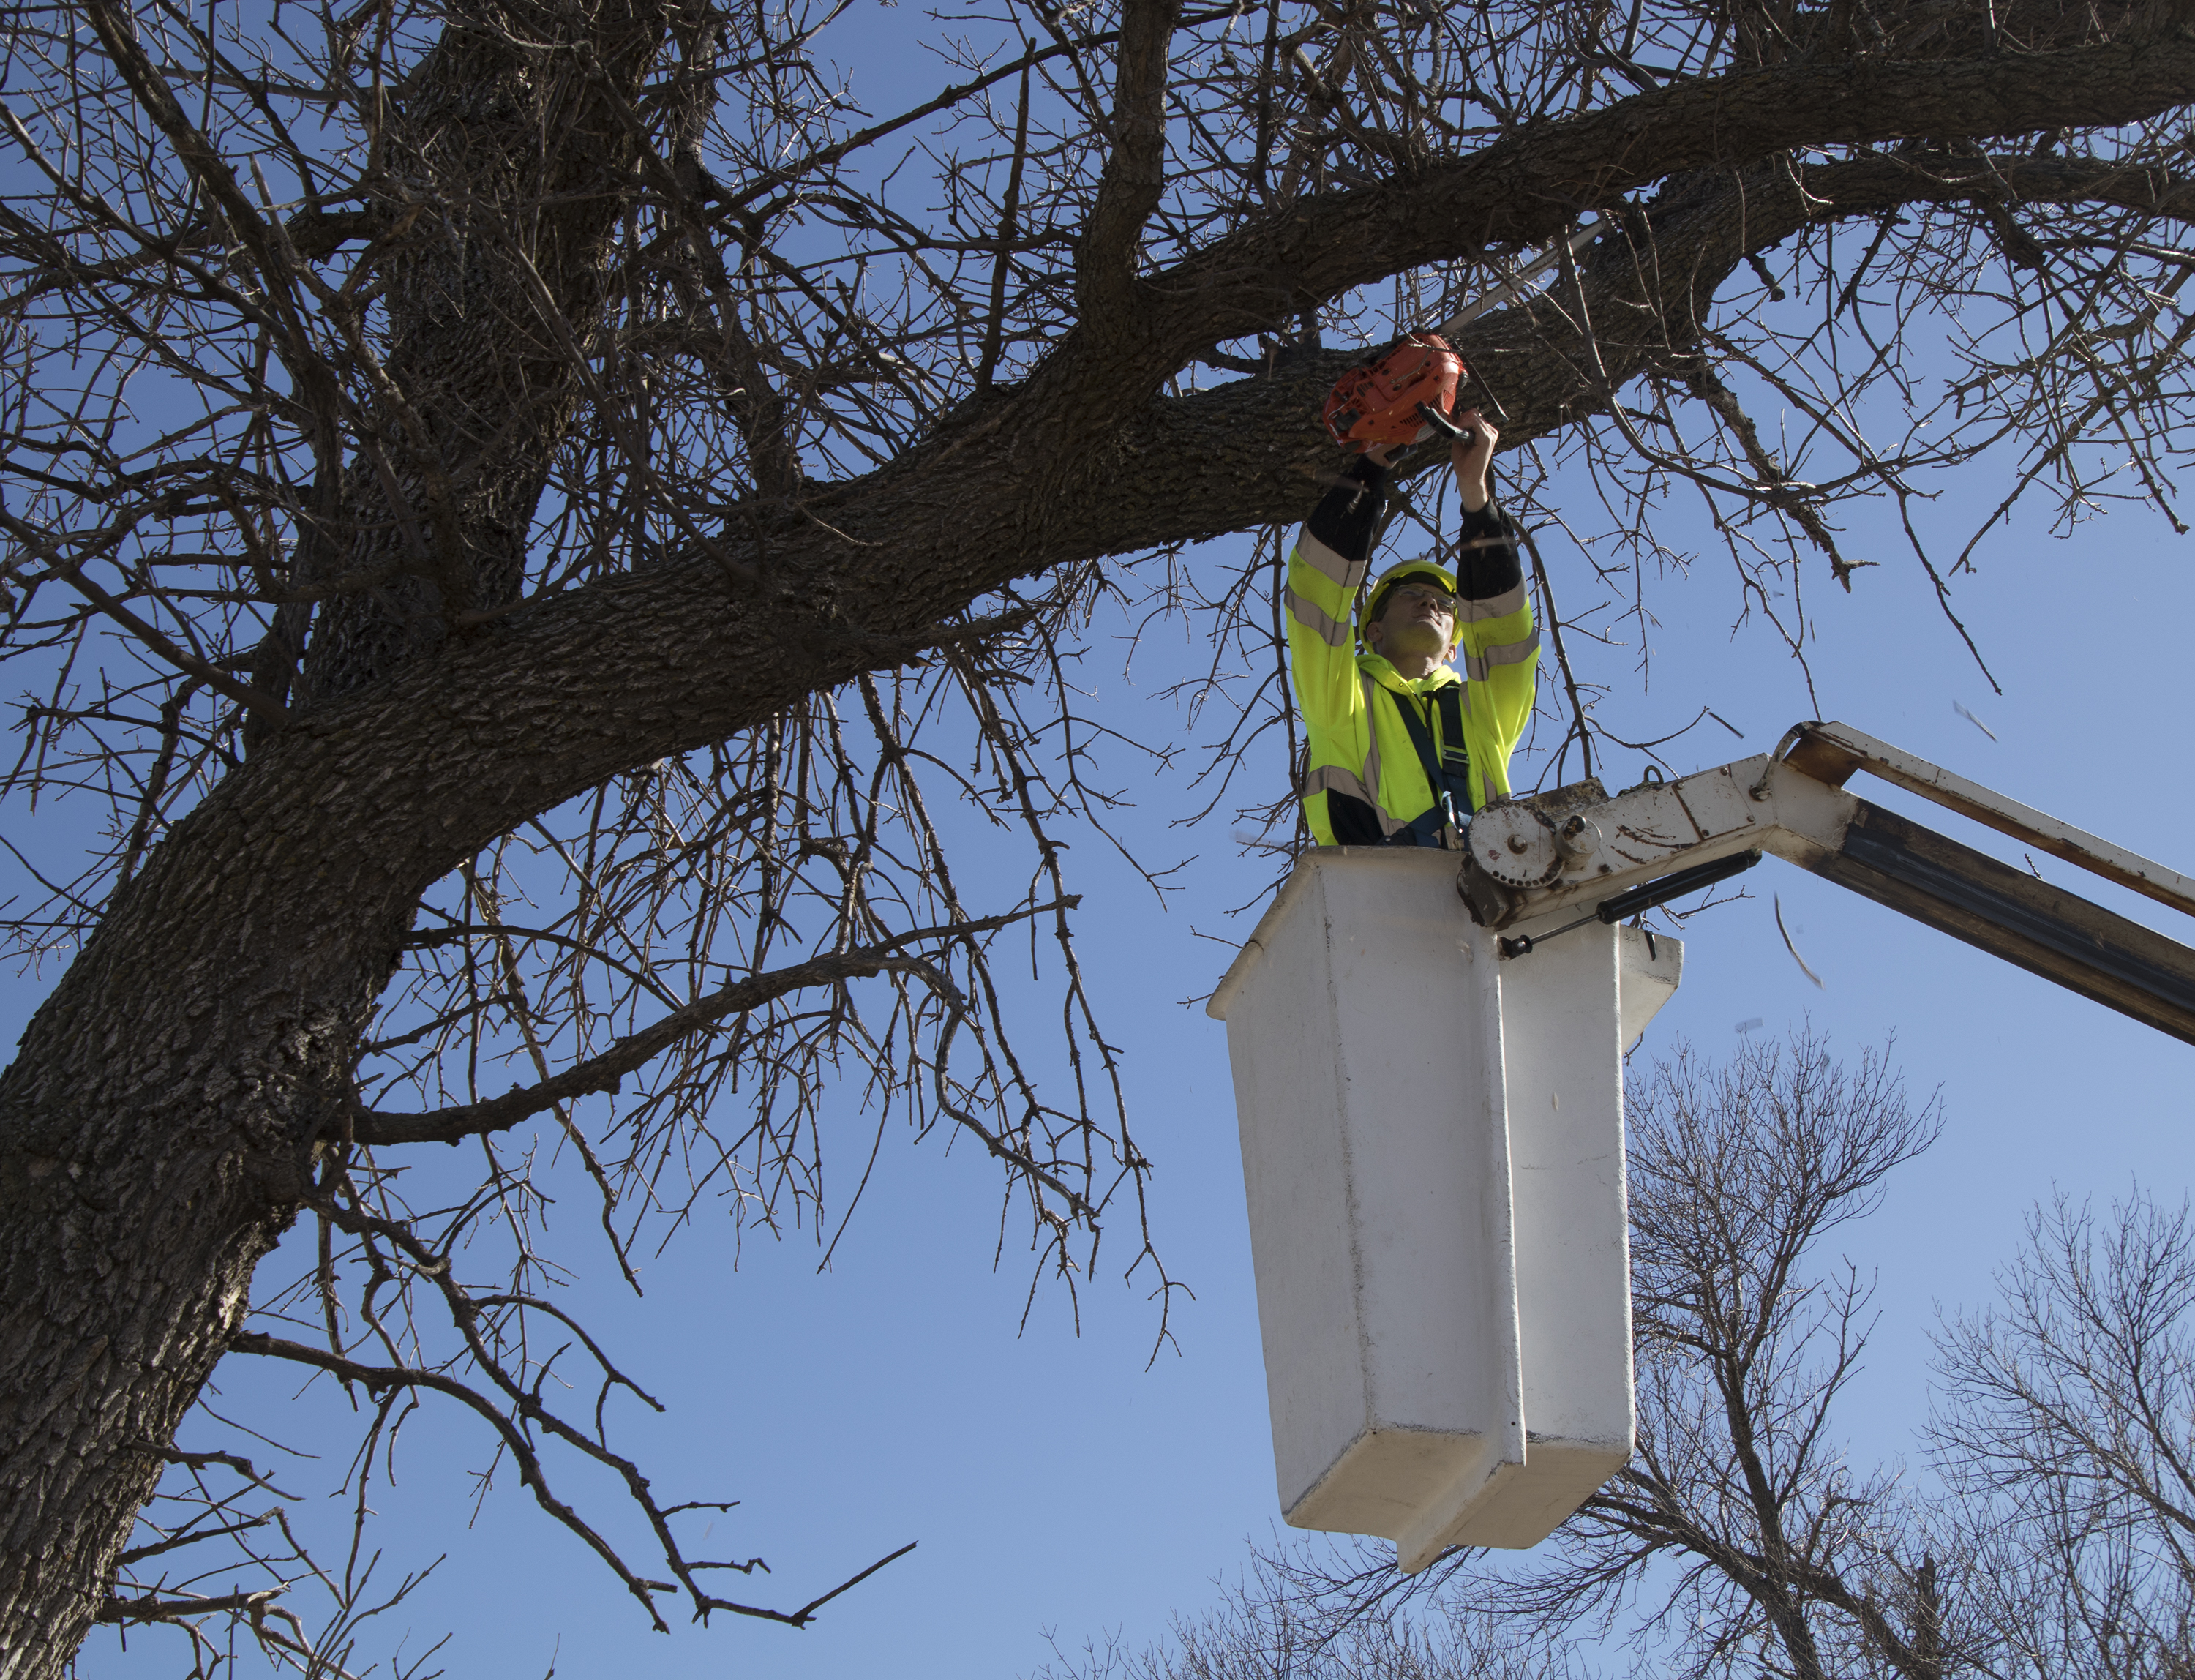 City of Atkinson uses grant for safety harness